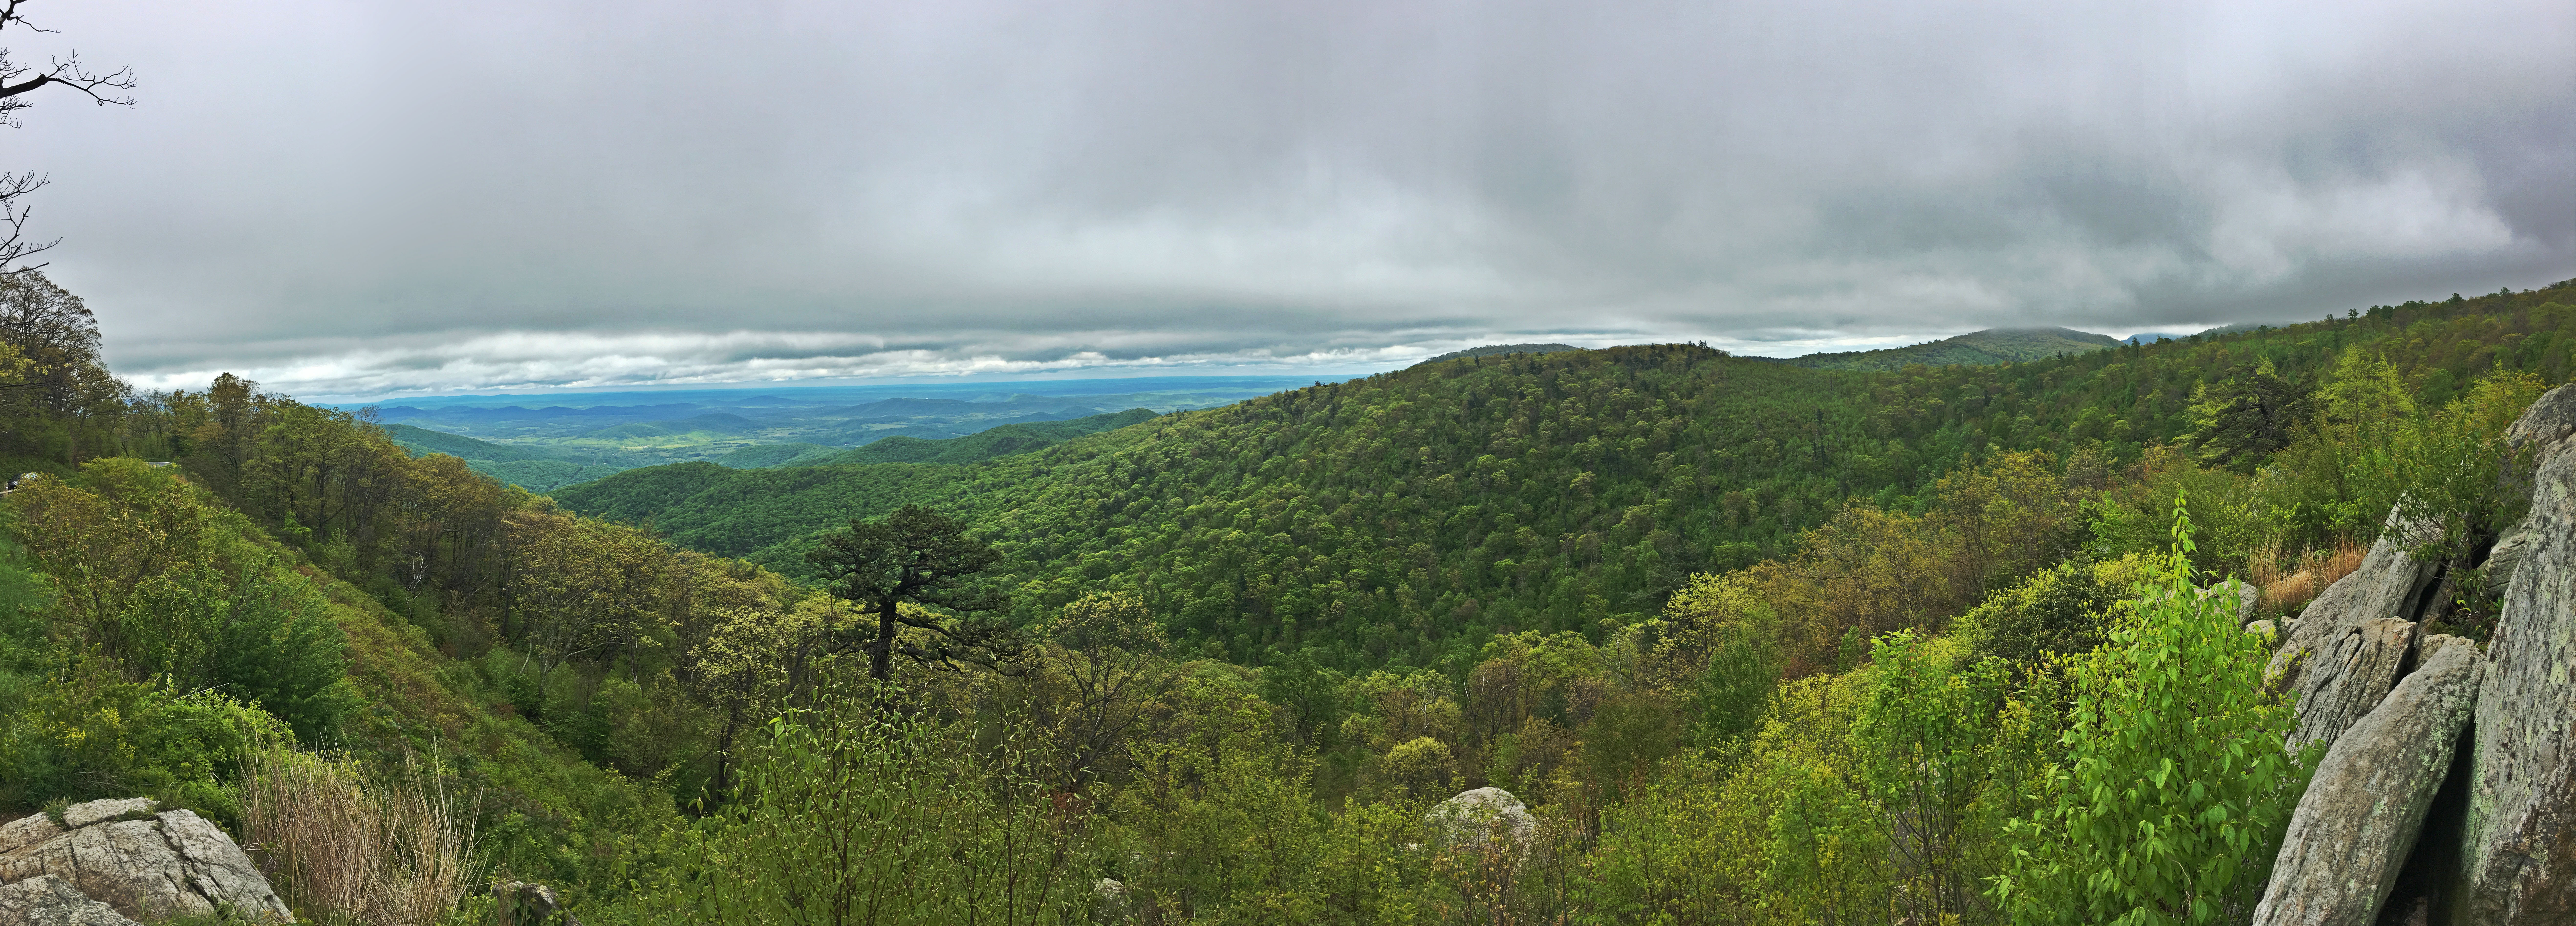 Panorama of the Blueridge Mountains from Skyline Drive